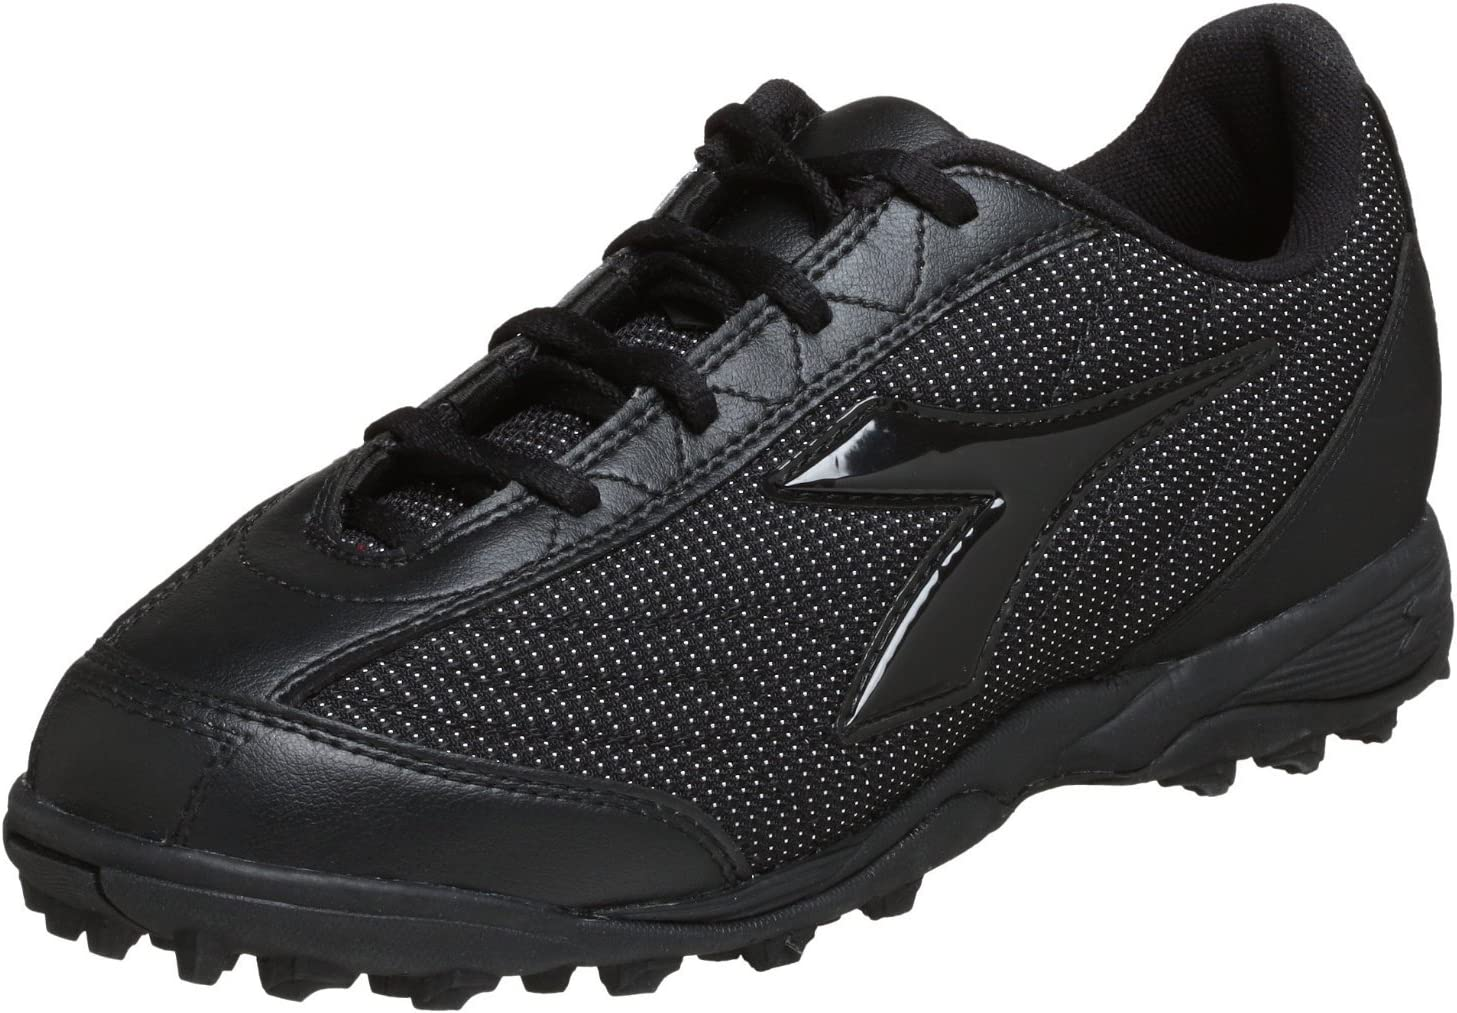 football referee turf shoes, OFF 76%,Buy!